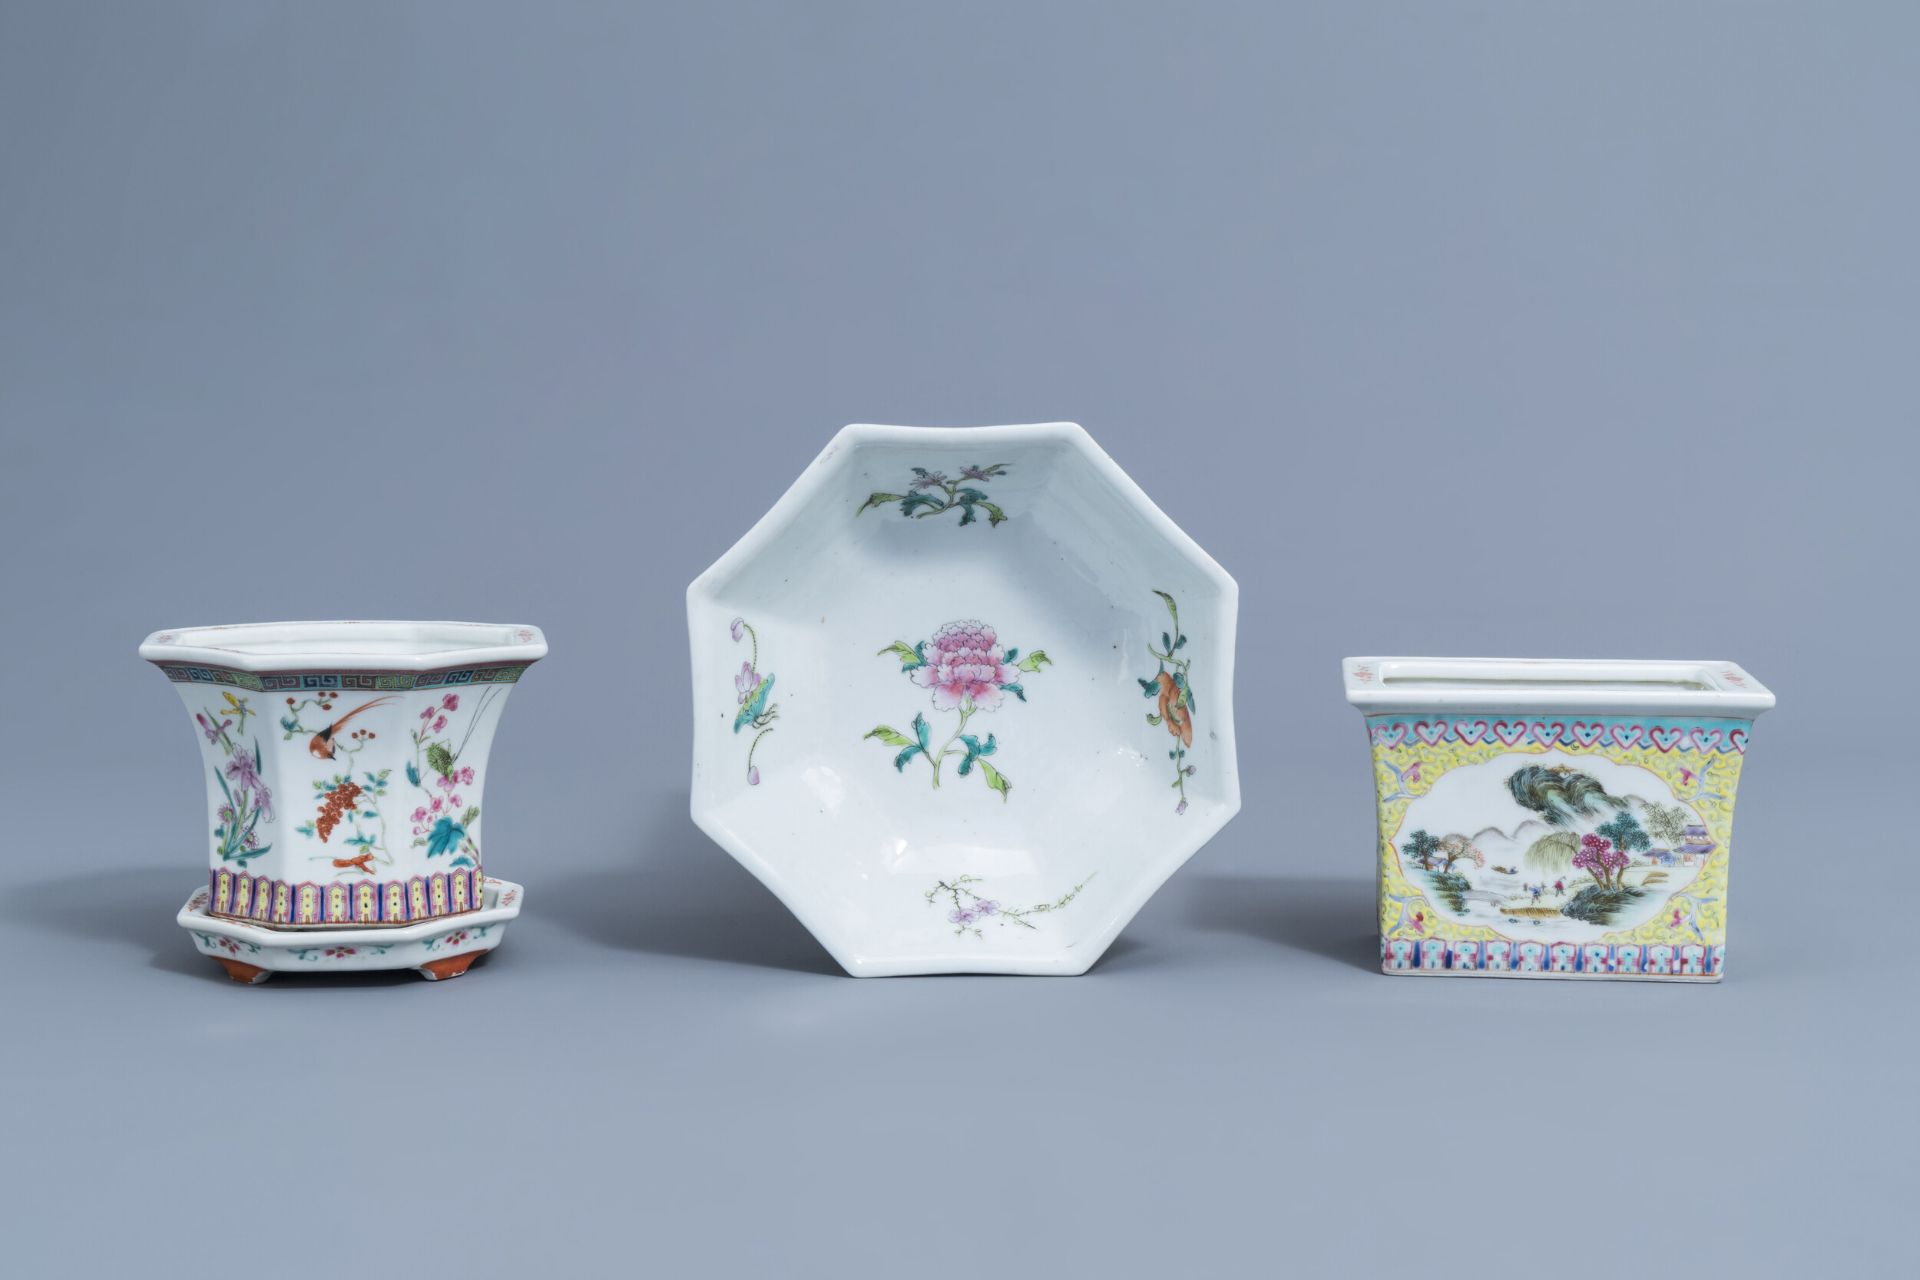 Two Chinese famille rose jardinires and a bowl with floral design, 20th C.